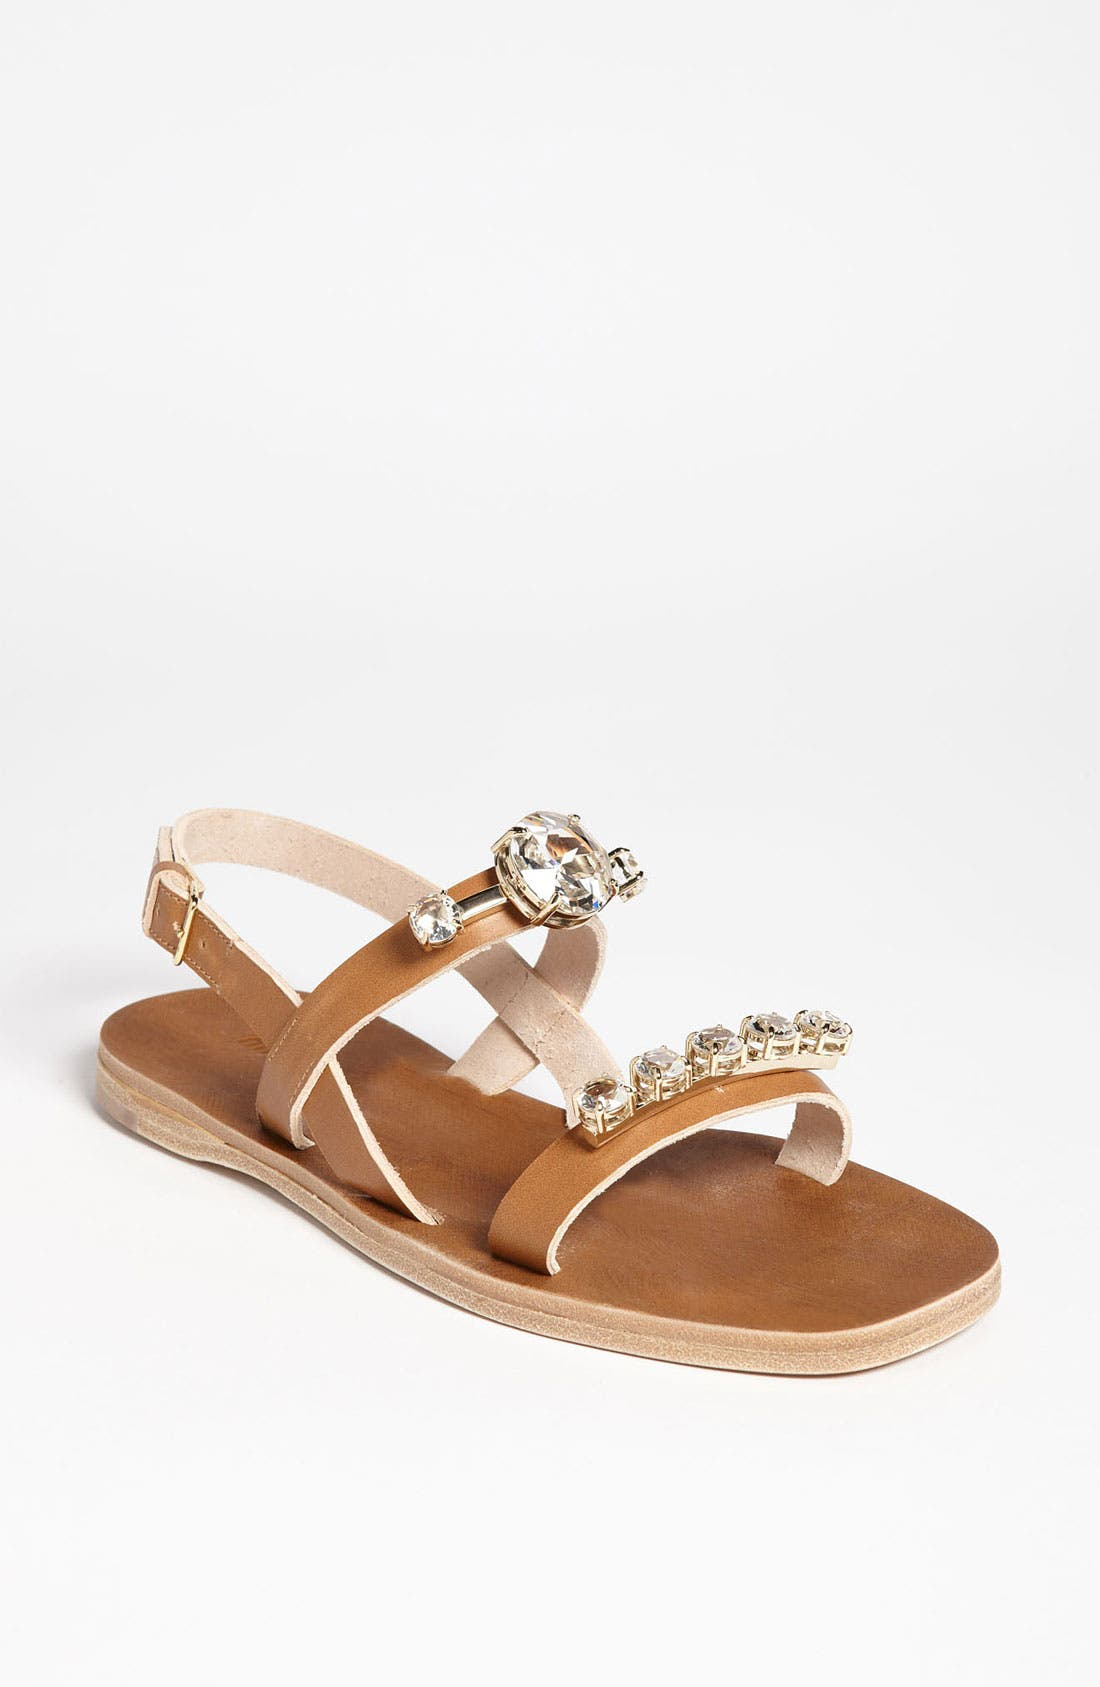 Main Image - Miu Miu Jeweled Sandal